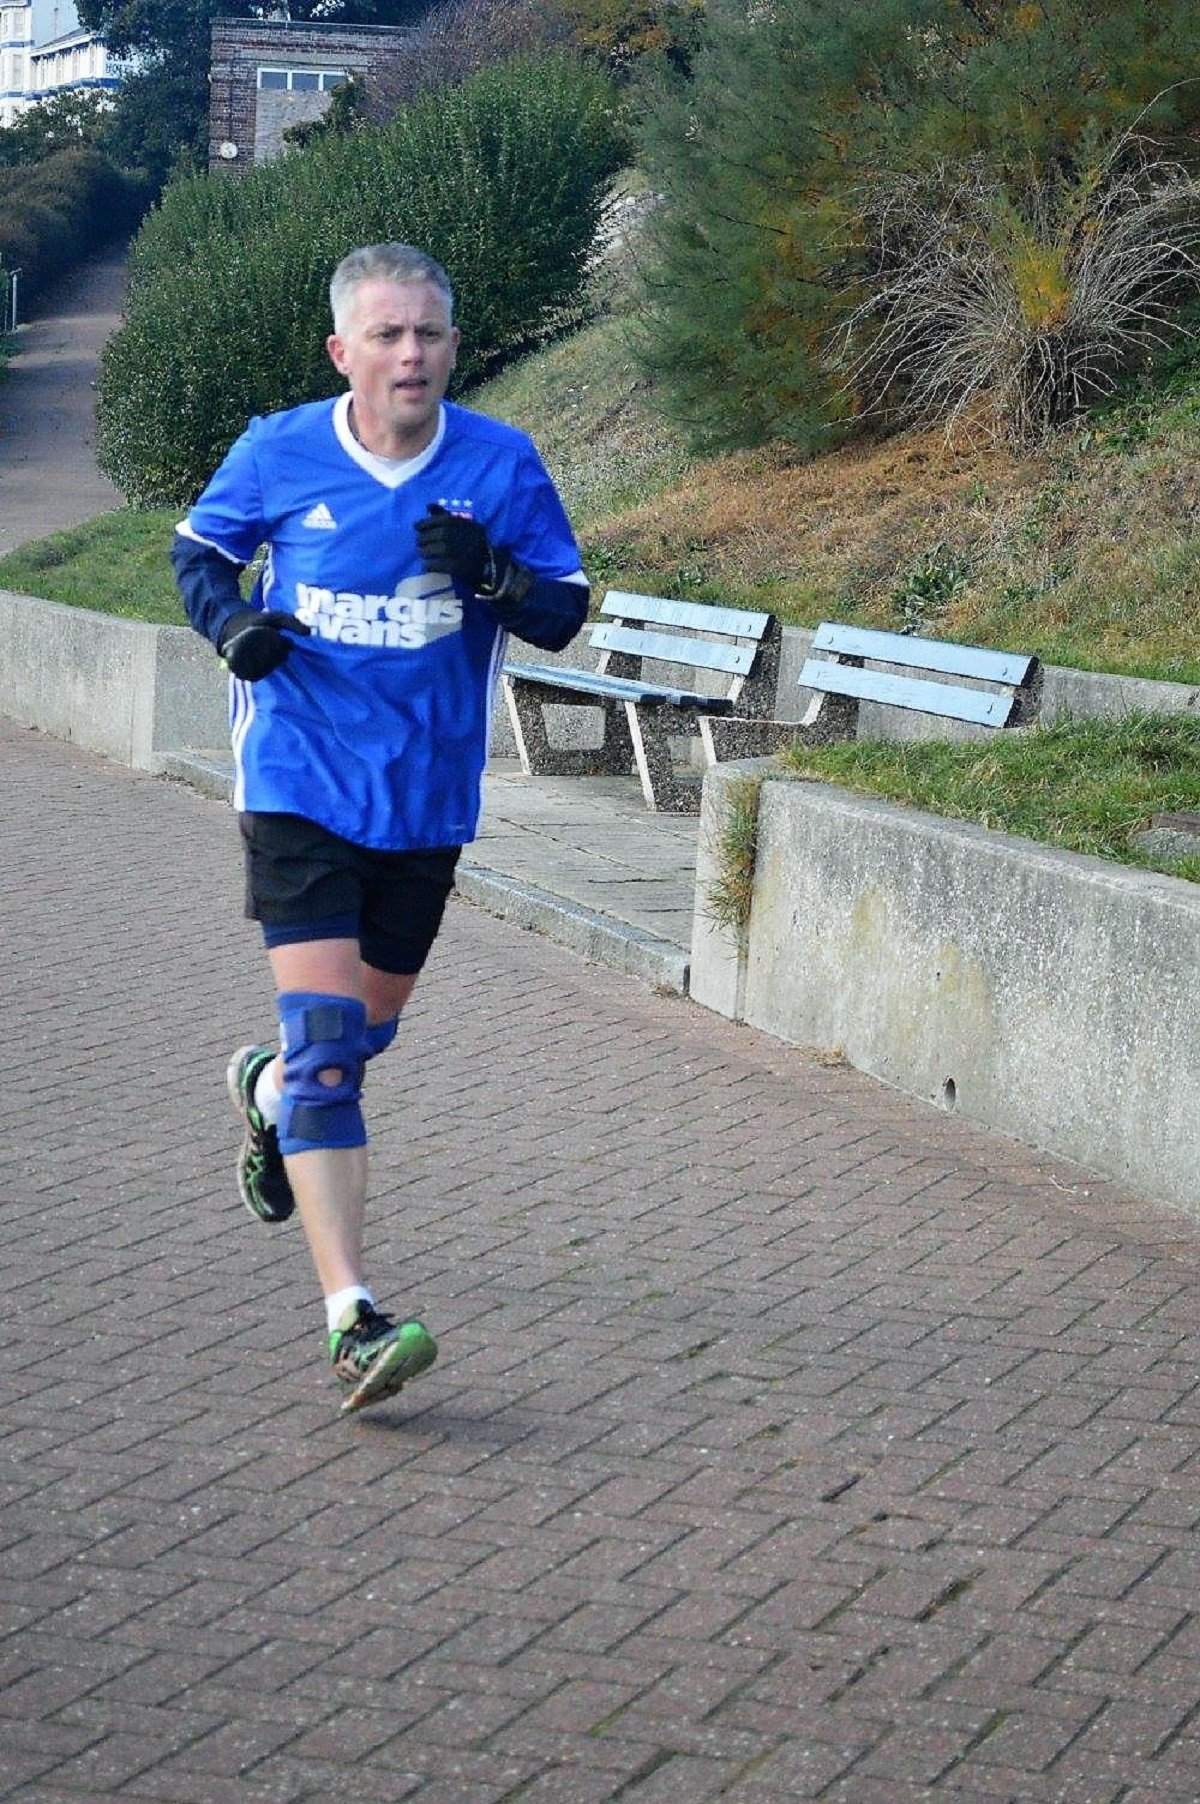 Rapid progress - Mike Ball has exceeded expectations this year and ran a time of 21 minutes 59 seconds at the latest Harwich Parkrun